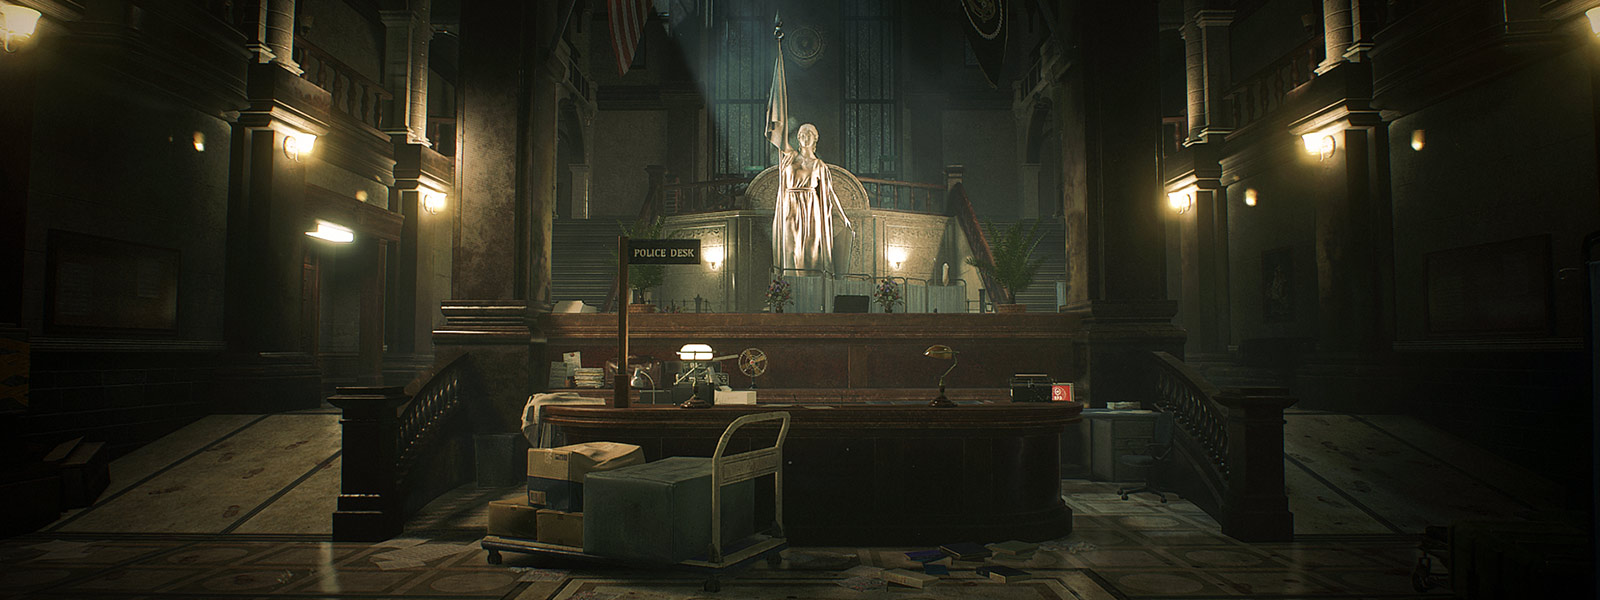 View of the front desk and statue inside the Raccoon City Police Station